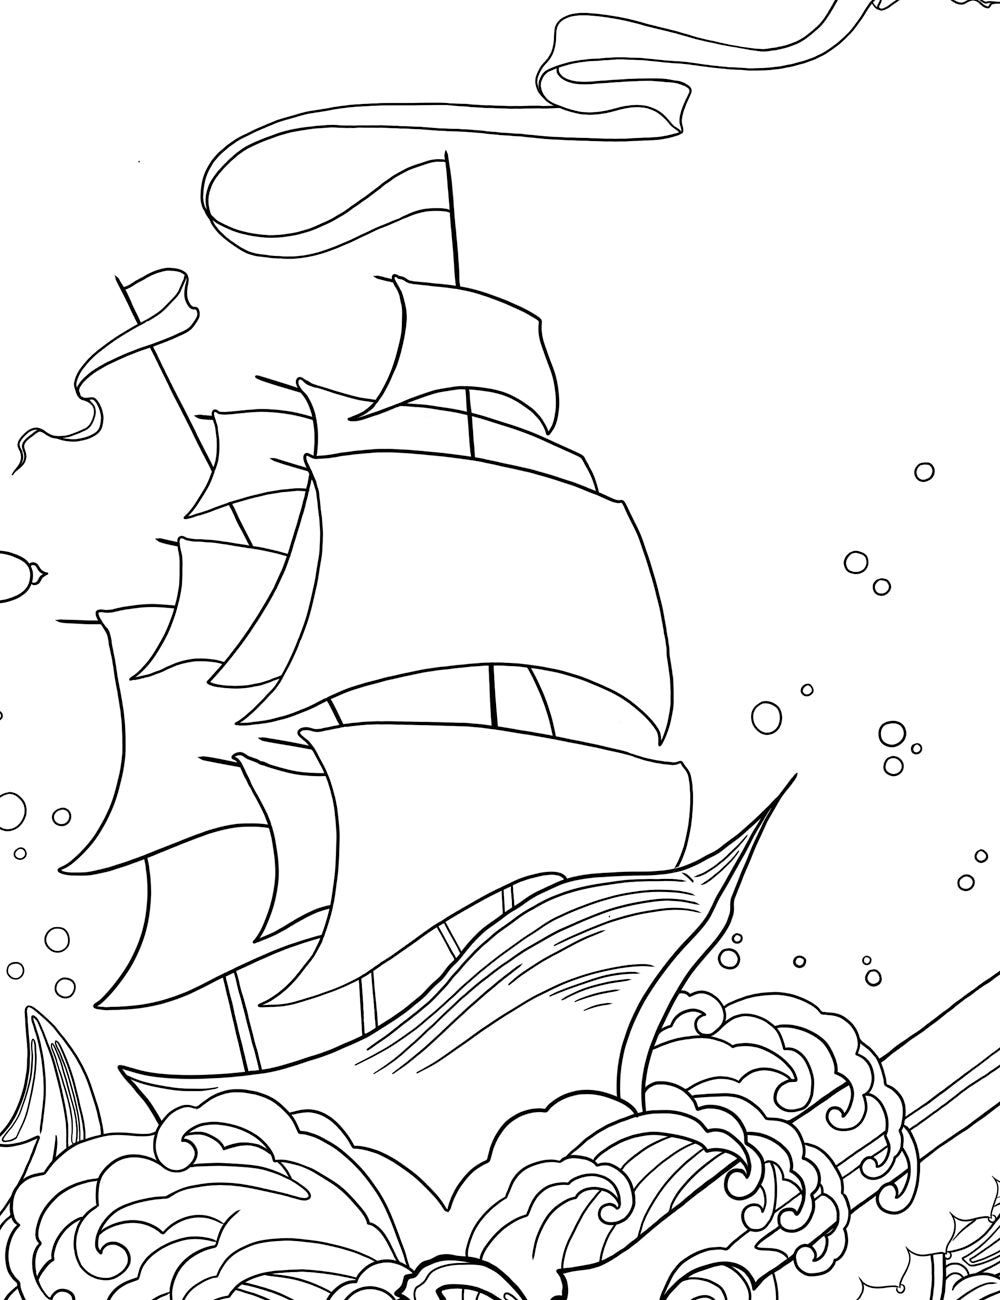 Asylum Coloring Book Page: Captain's Ship